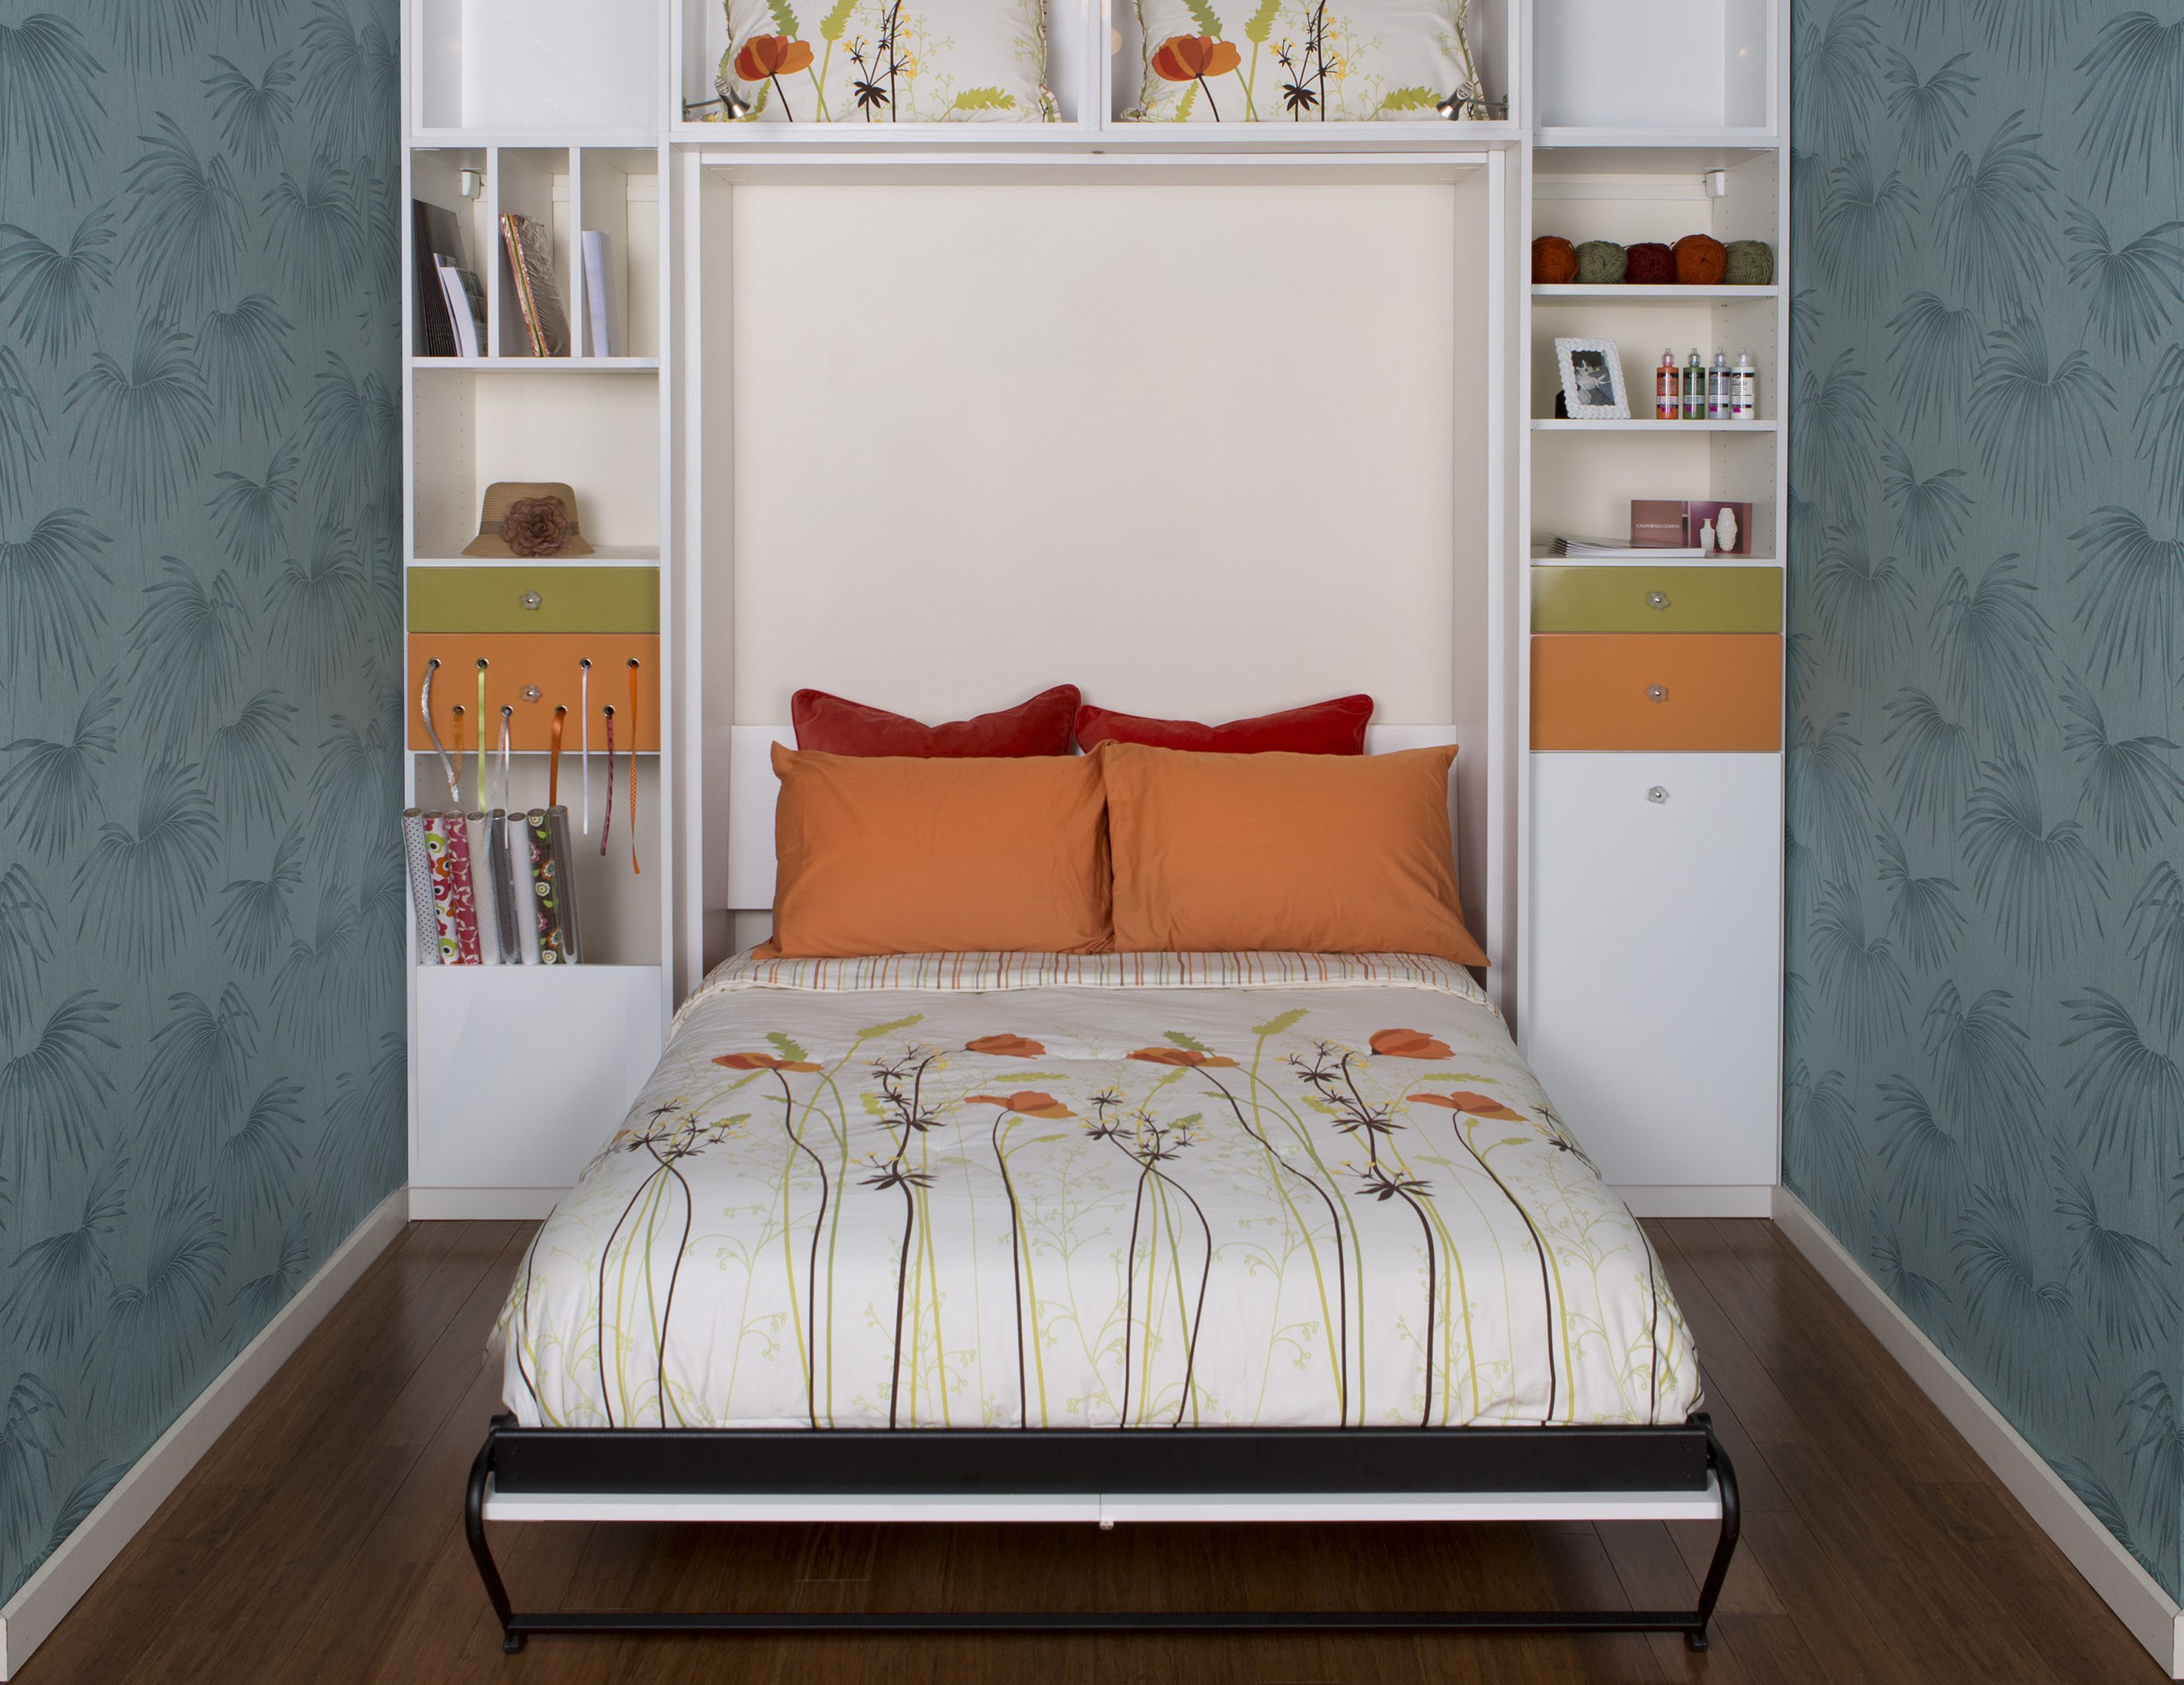 How to Choose the Perfect Wall Bed that Fits your Style: Tips Murphy Bed Seattle on hardwood floors seattle, daybeds seattle, art seattle, chairs seattle, library seattle, murphy bed office, murphy bed with table, murphy bed in closet, bunk beds seattle, windows seattle, murphy bed shed, murphy bed hardware, murphy bed ideas,